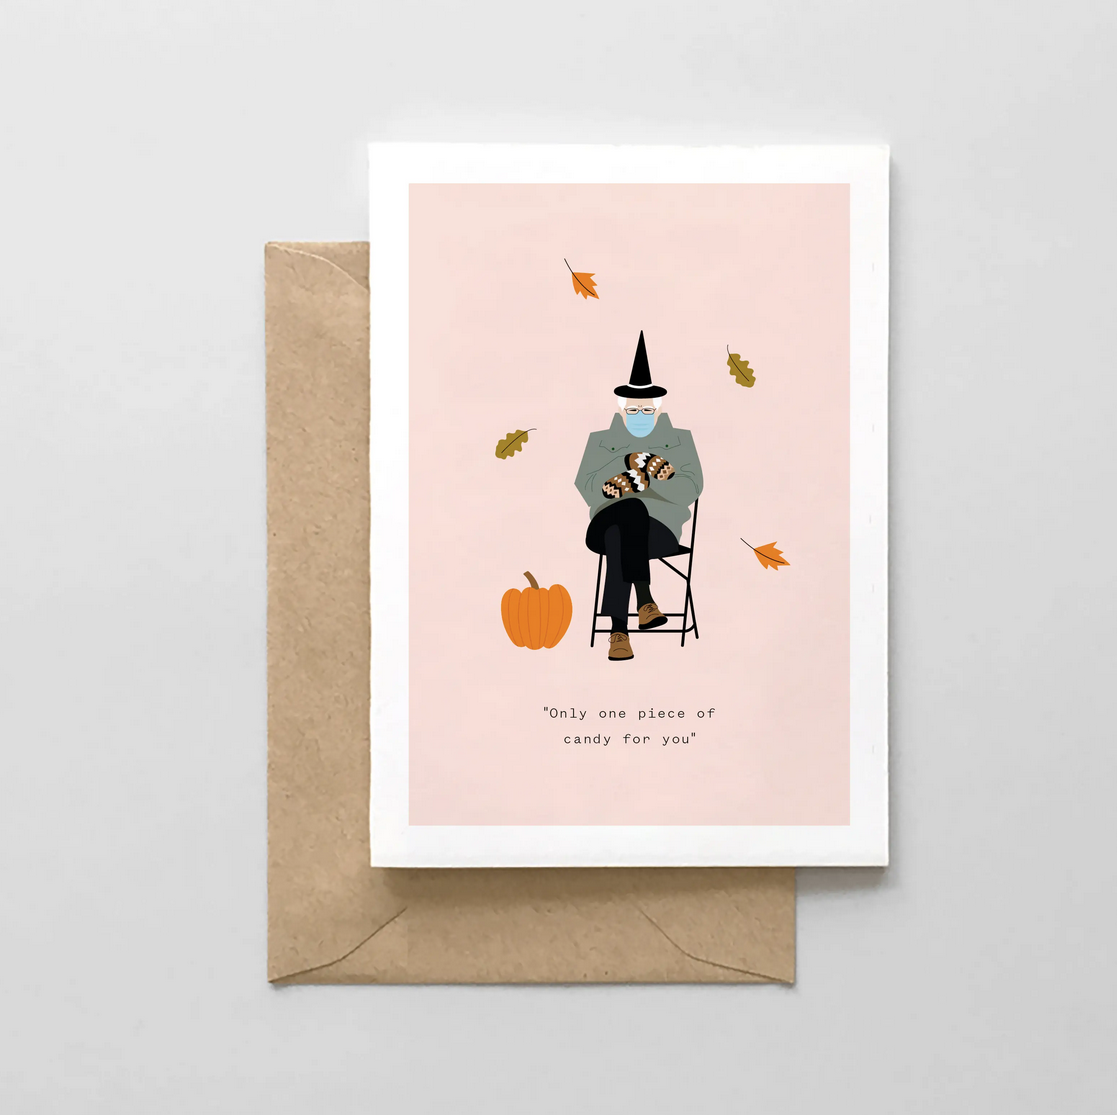 """Spaghetti & Meatballs - SAM Only One Piece of Candy For You"""" Bernie Halloween Card"""